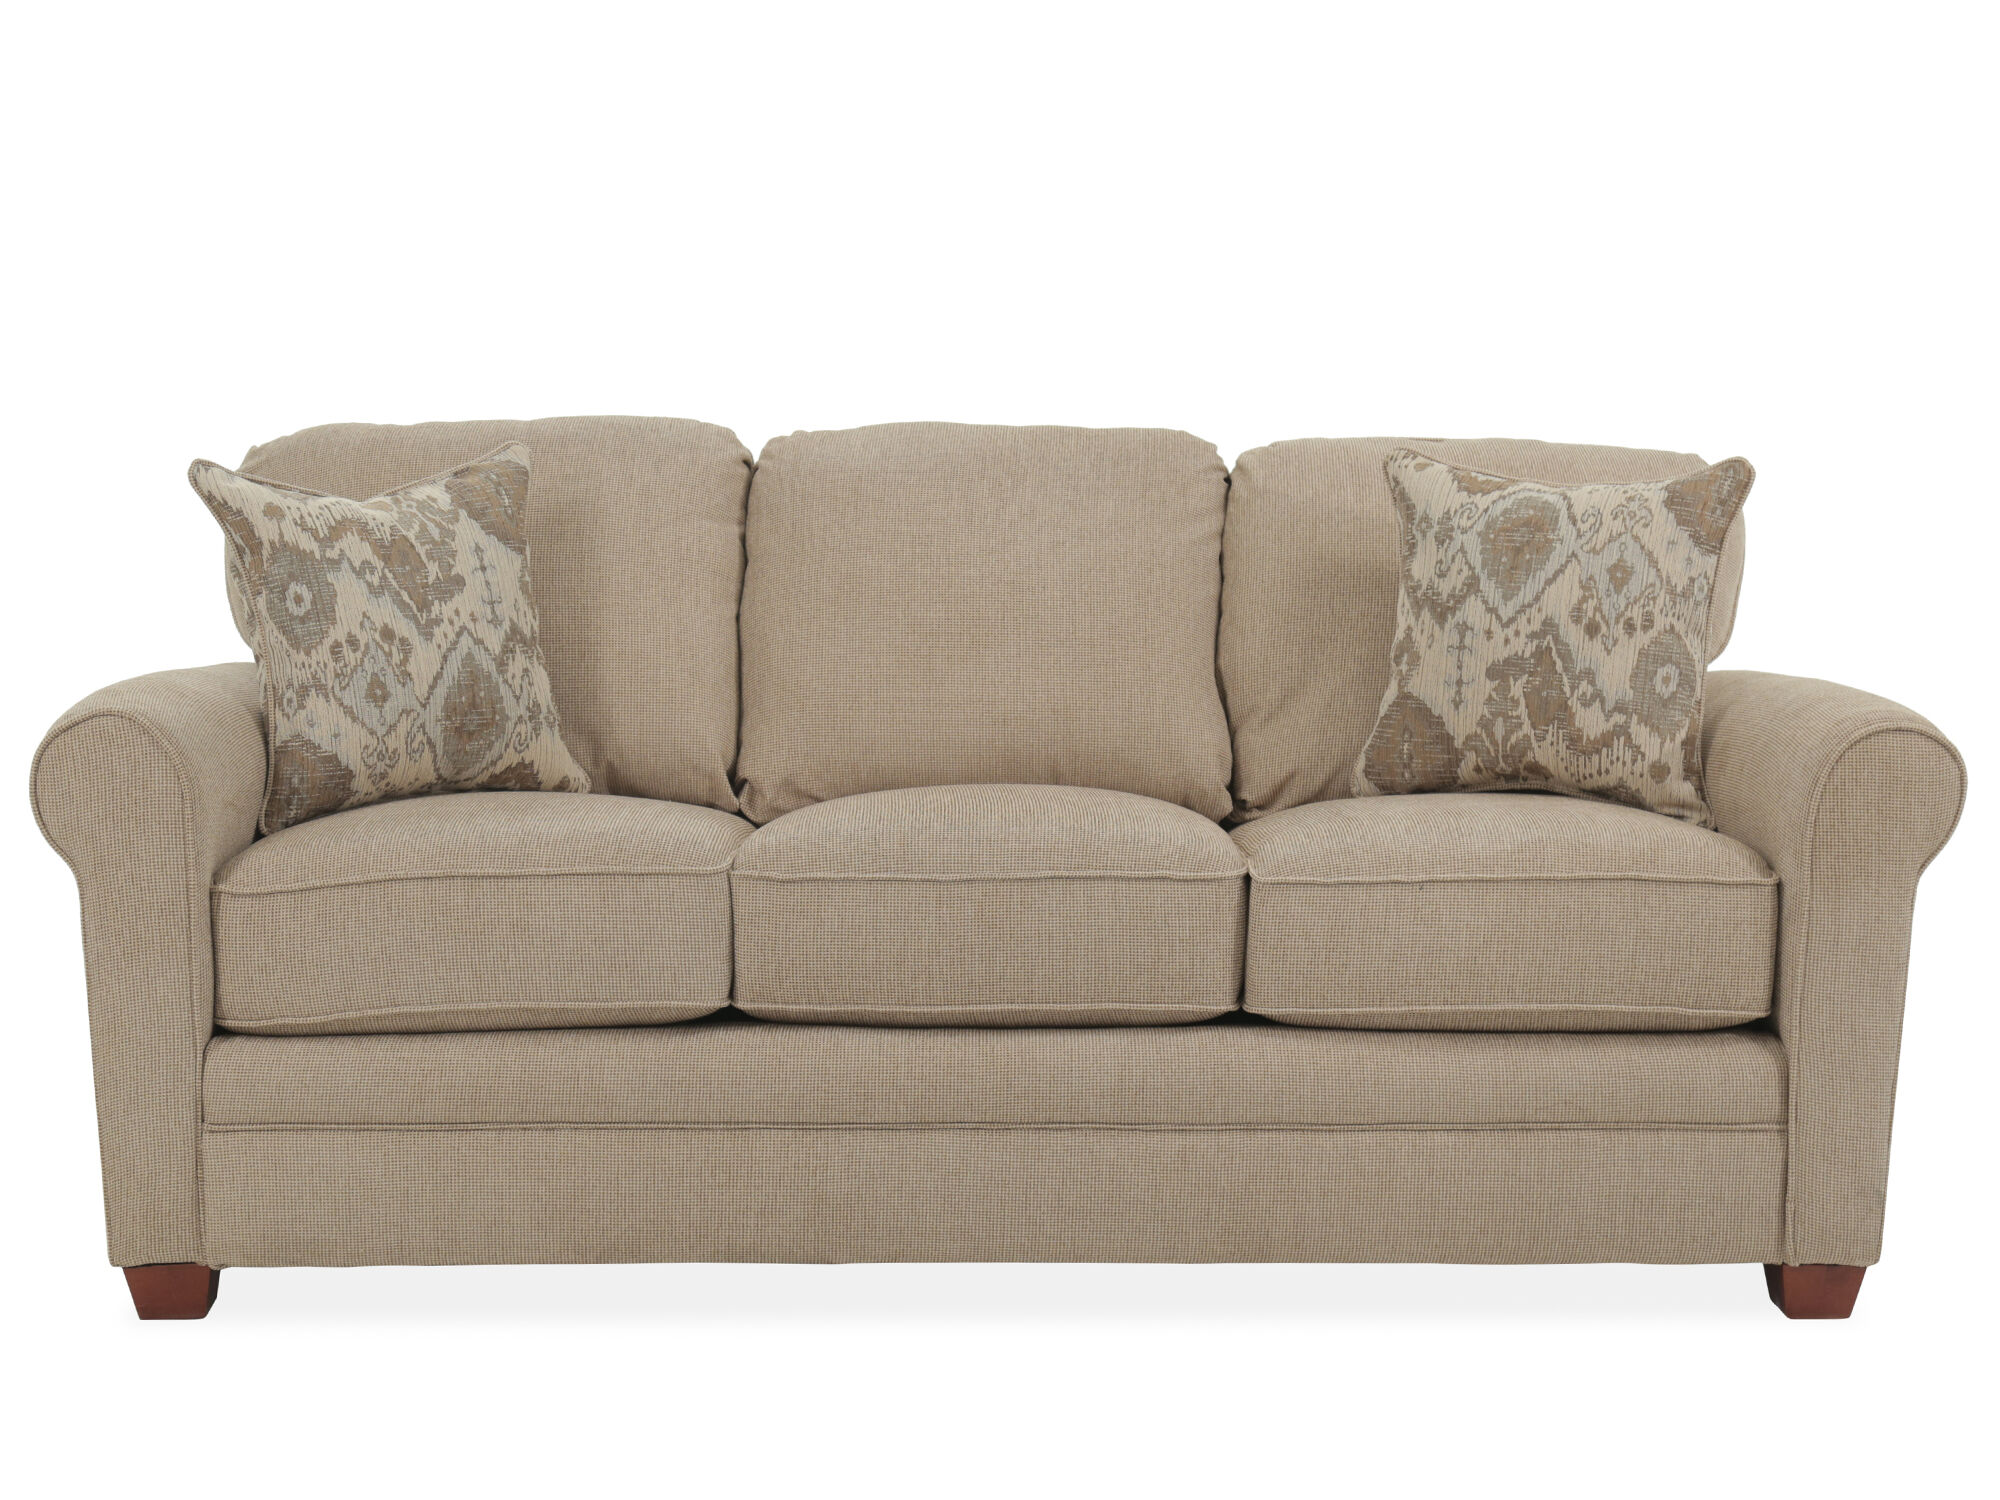 Roll Arm Transitional 84 Queen Sleeper Sofa